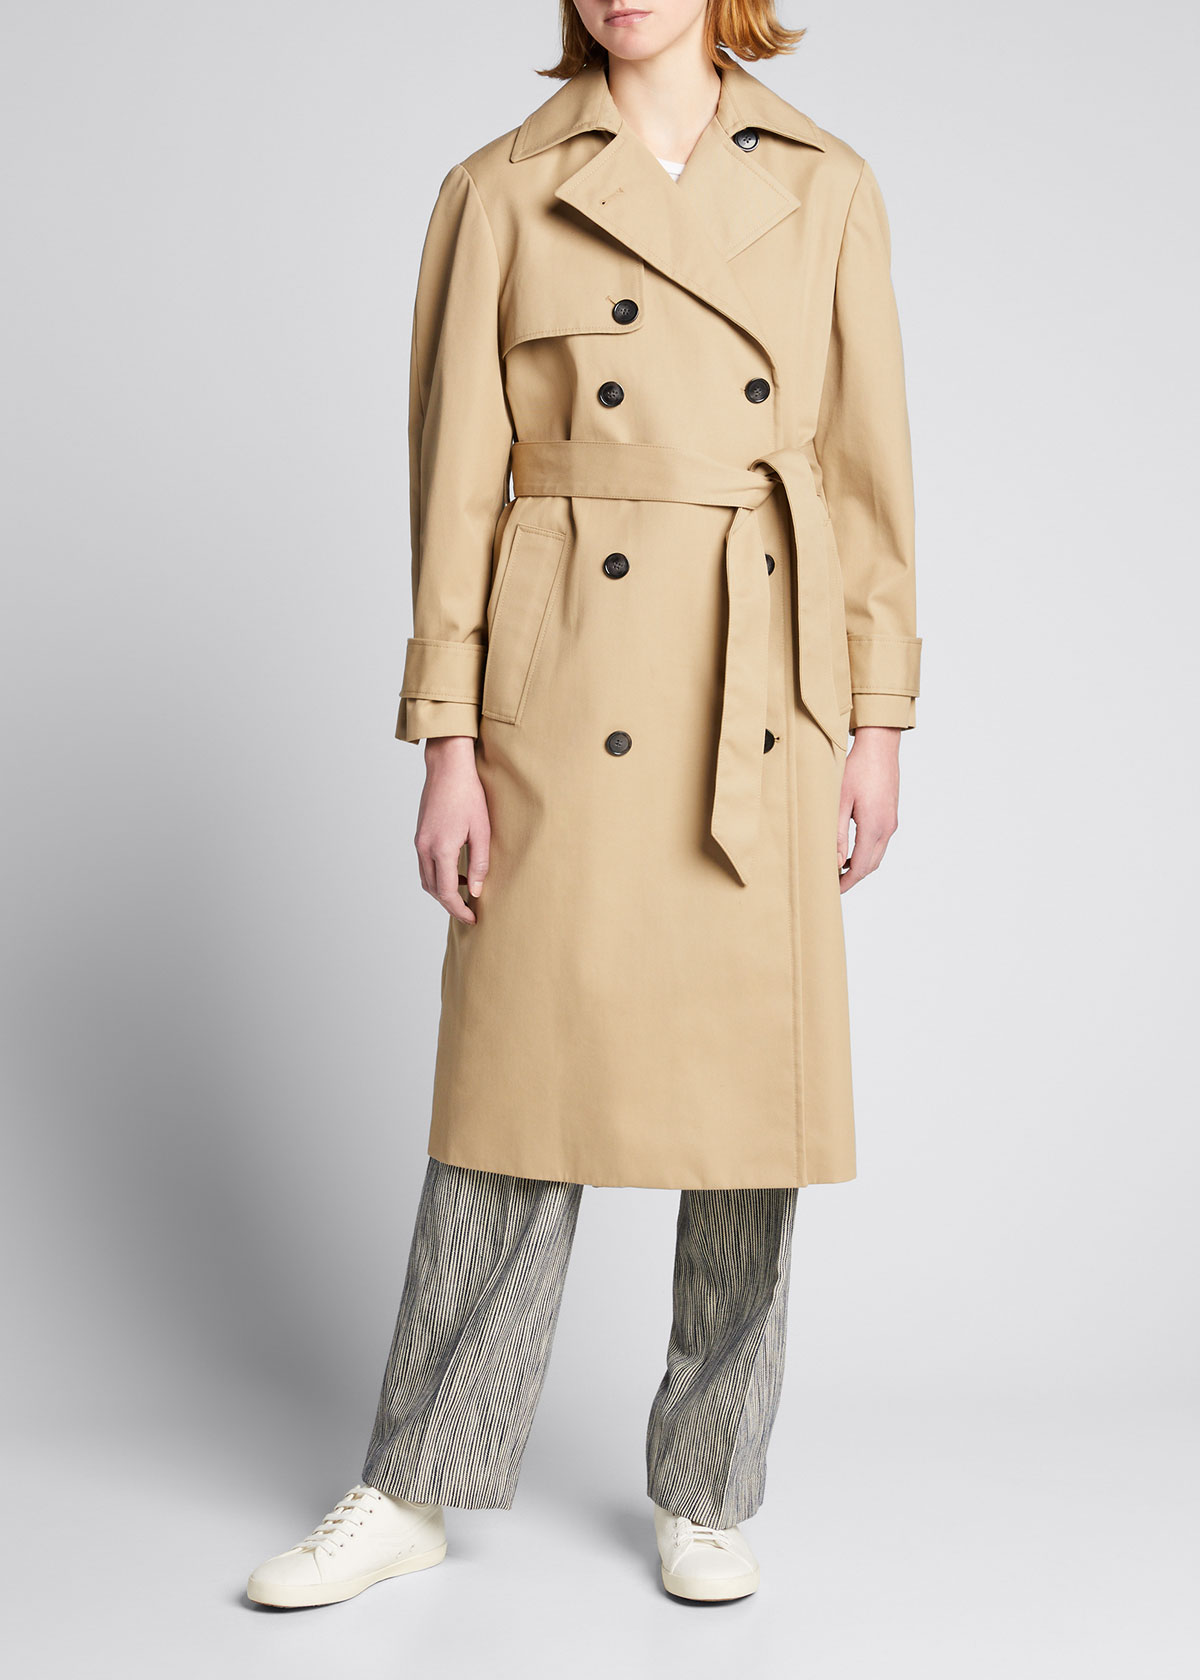 Officine Generale Leathers AMY WATER-RESISTANT TRENCH COAT